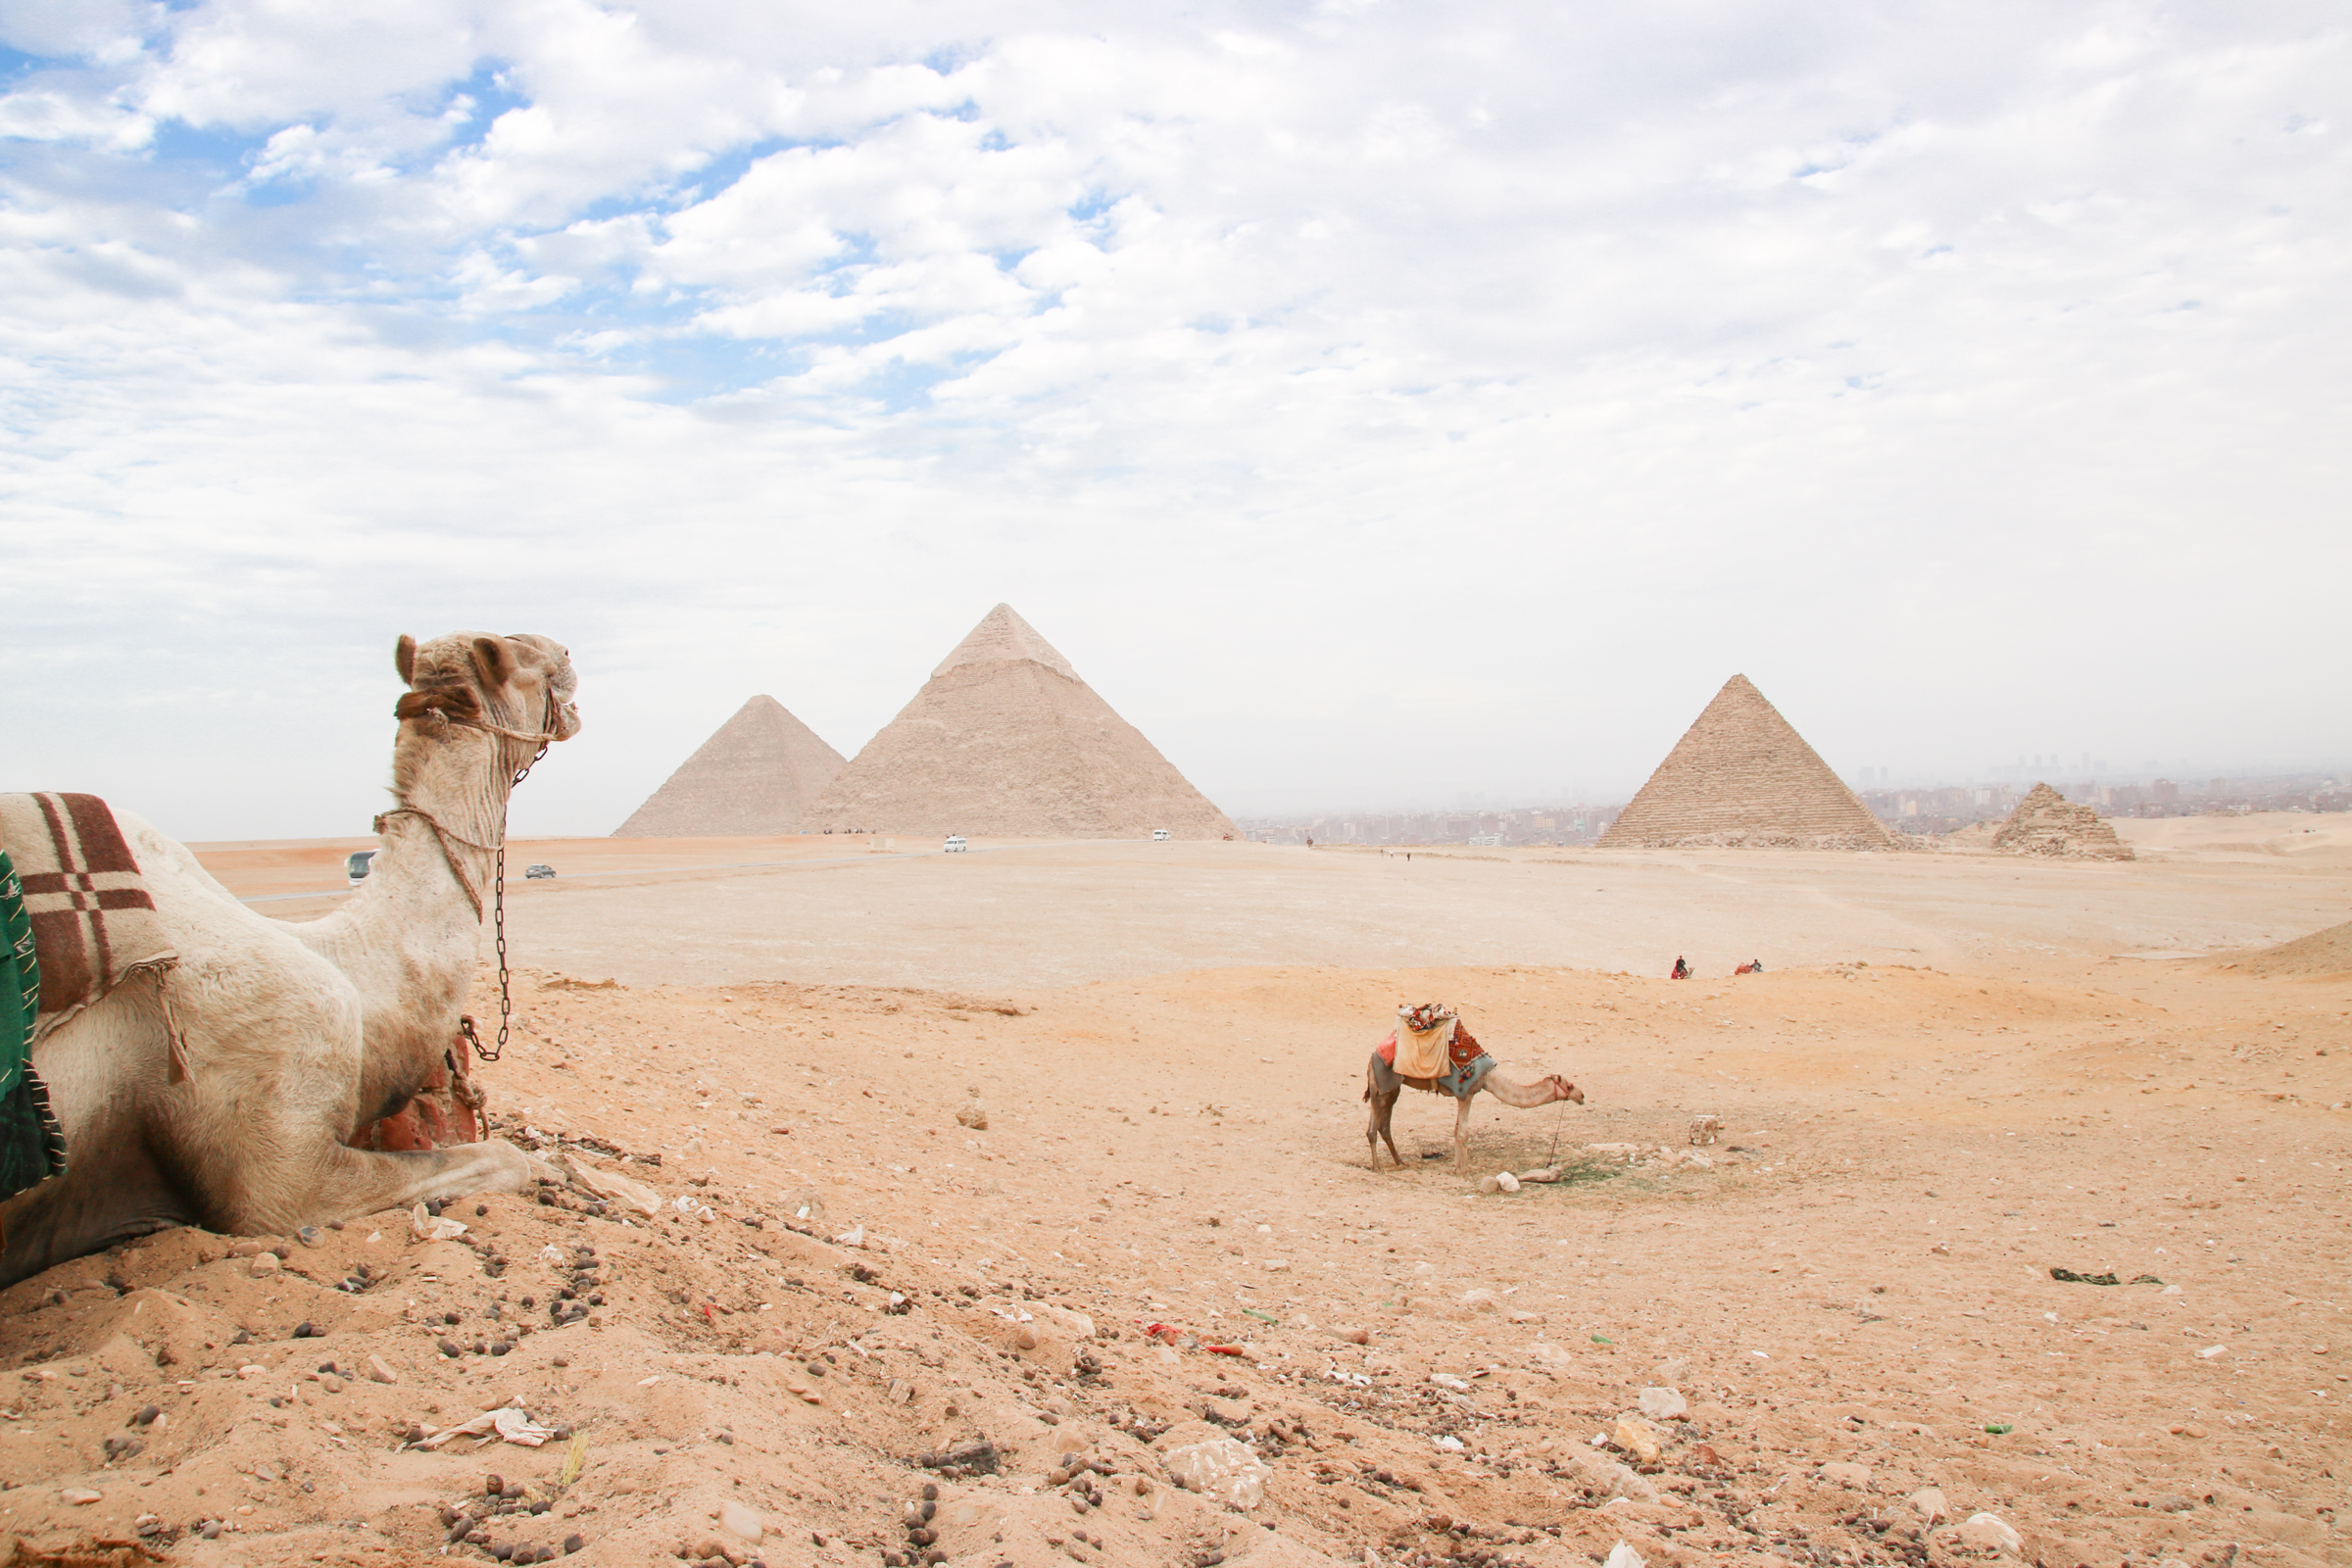 Nine things you want to know when visiting the pyramids of Egypt